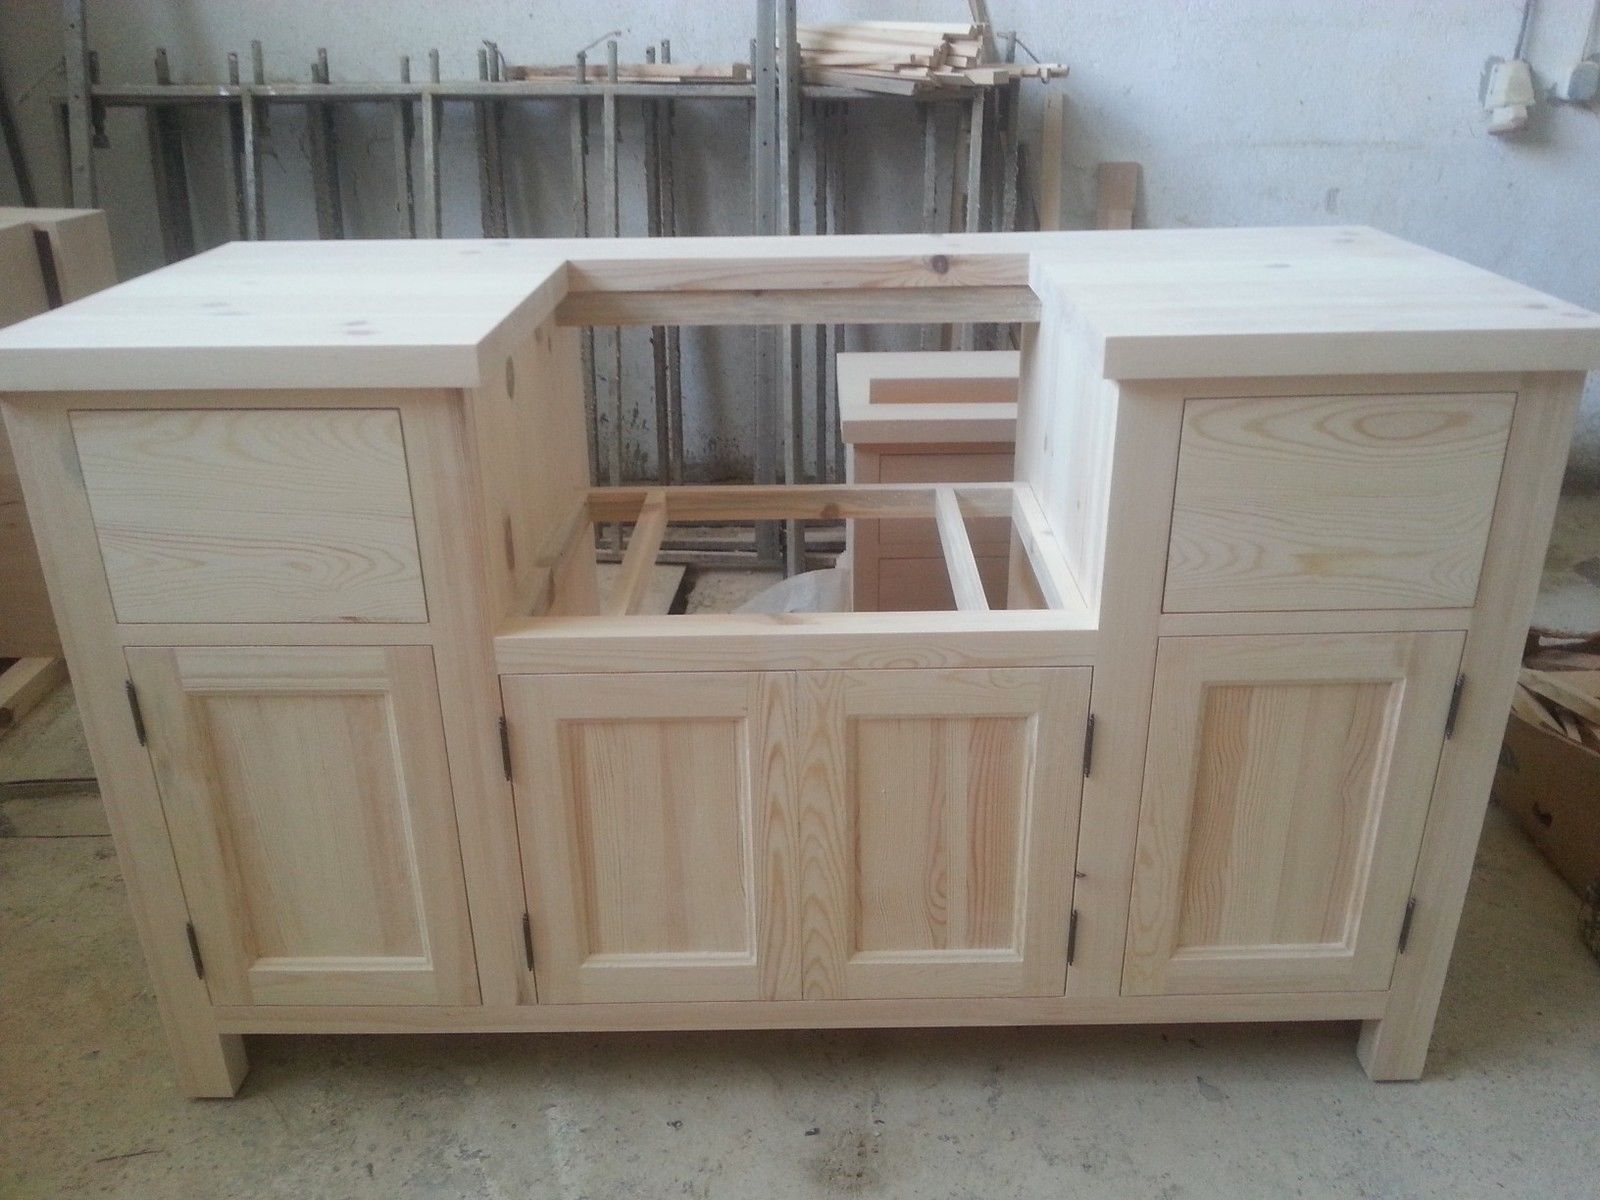 Solid Pine Belfast Sink Kitchen Unit for 600mm width sink in Home ...